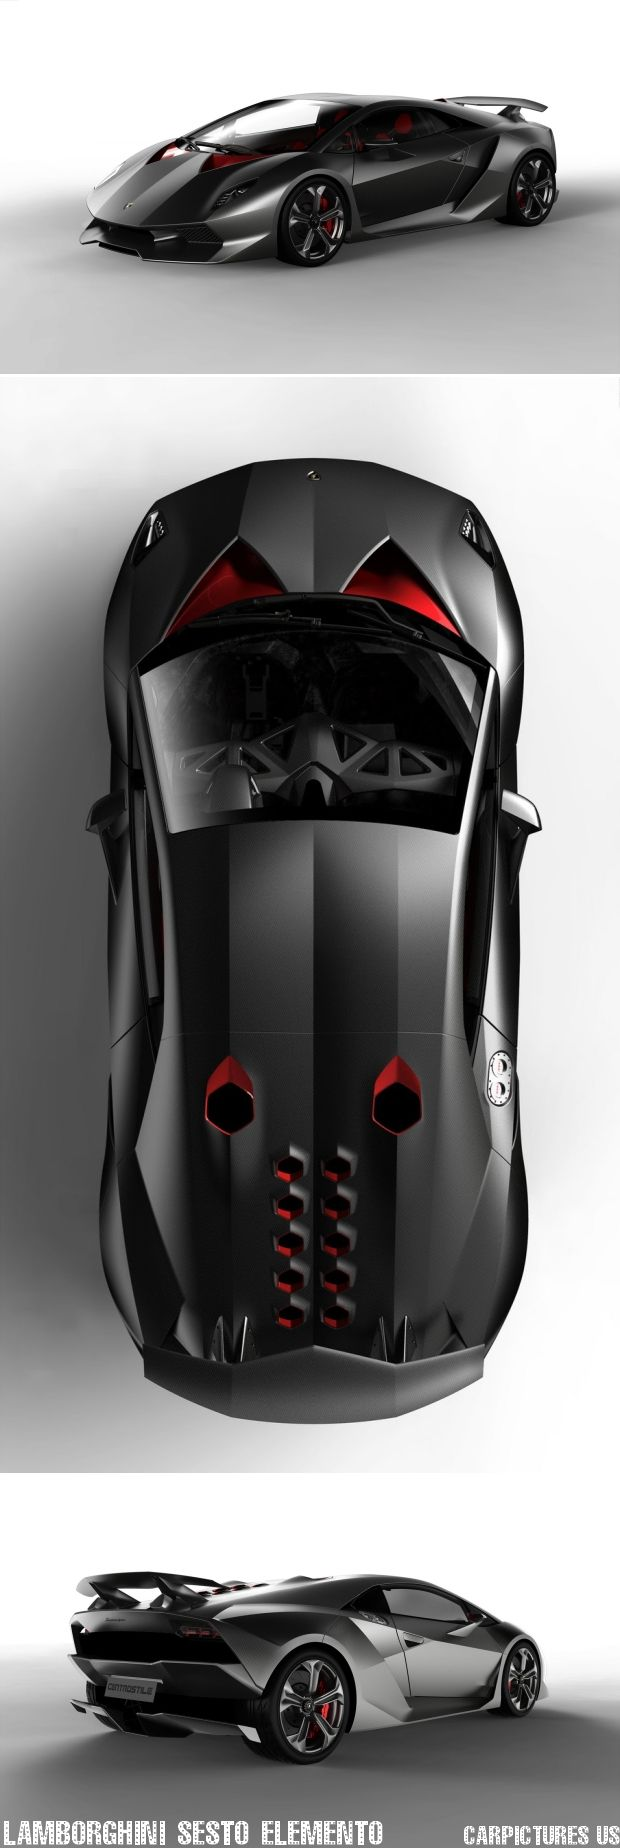 Lamborghini Sesto Elemento 106 St Tire & Wheel locations are home of the $45 wheel alignment (most cars), come see us at 106-01 Northern Blvd, 118-02 Merrick Blvd, 105-08 Northern Blvd, 79-20 Queens Blvd, 45-13 108 St serving Forest Hills and Rego Park  http://www.106sttire.com/wheel-alignment